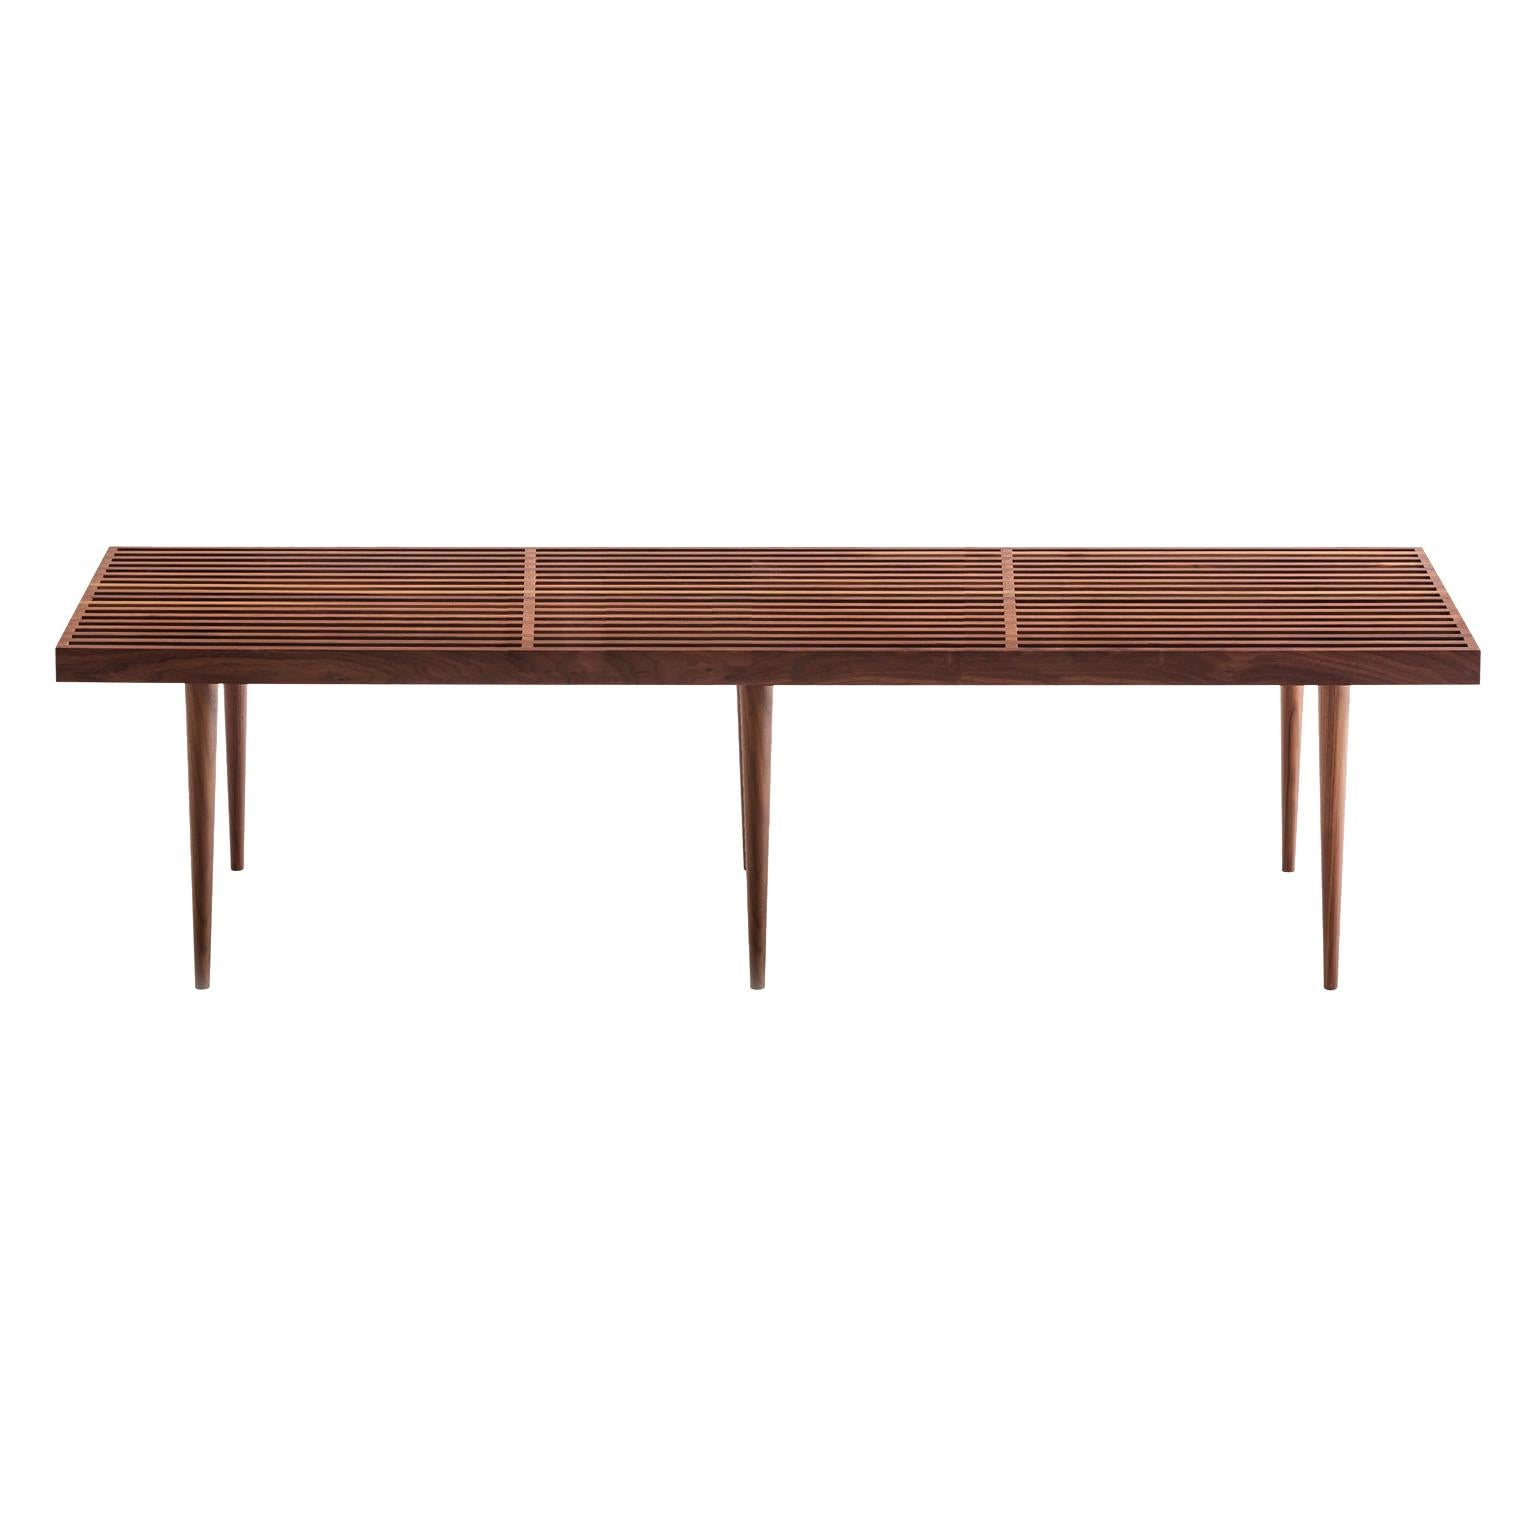 Slatted Walnut Bench or Coffee Table by Mel Smilow